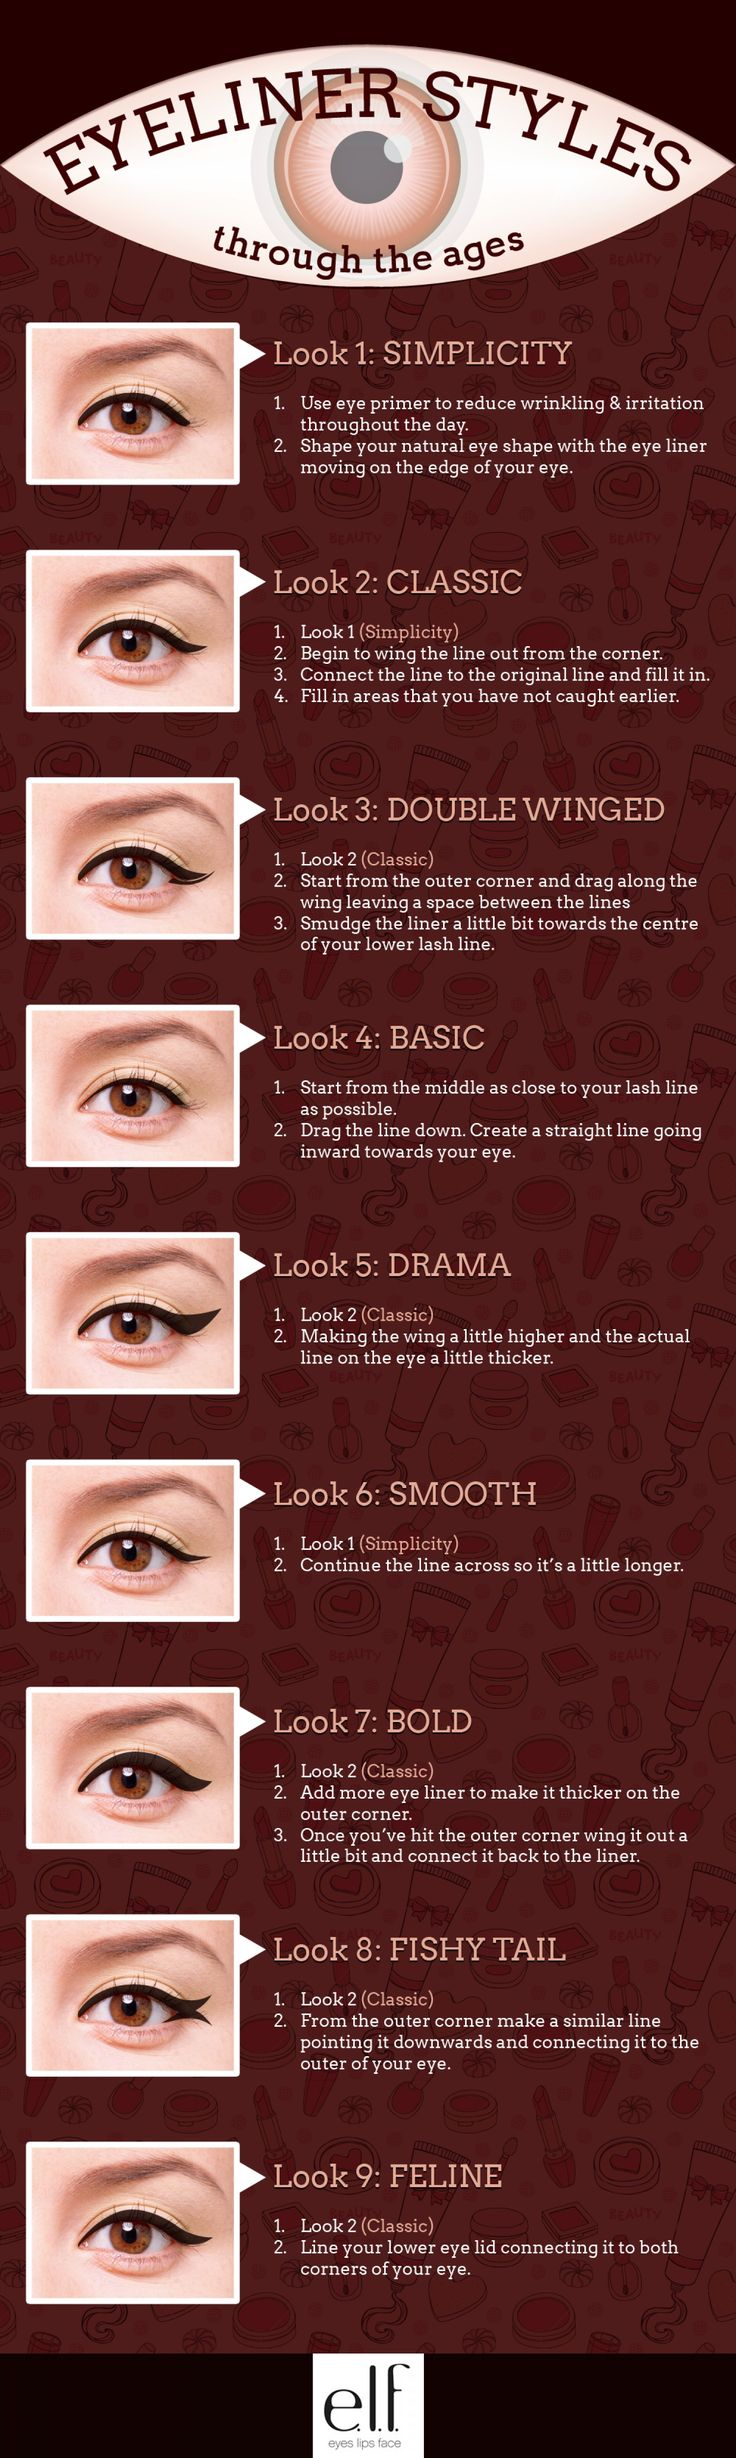 Eyeliner Styles Through the Ages #Infographic #makeup